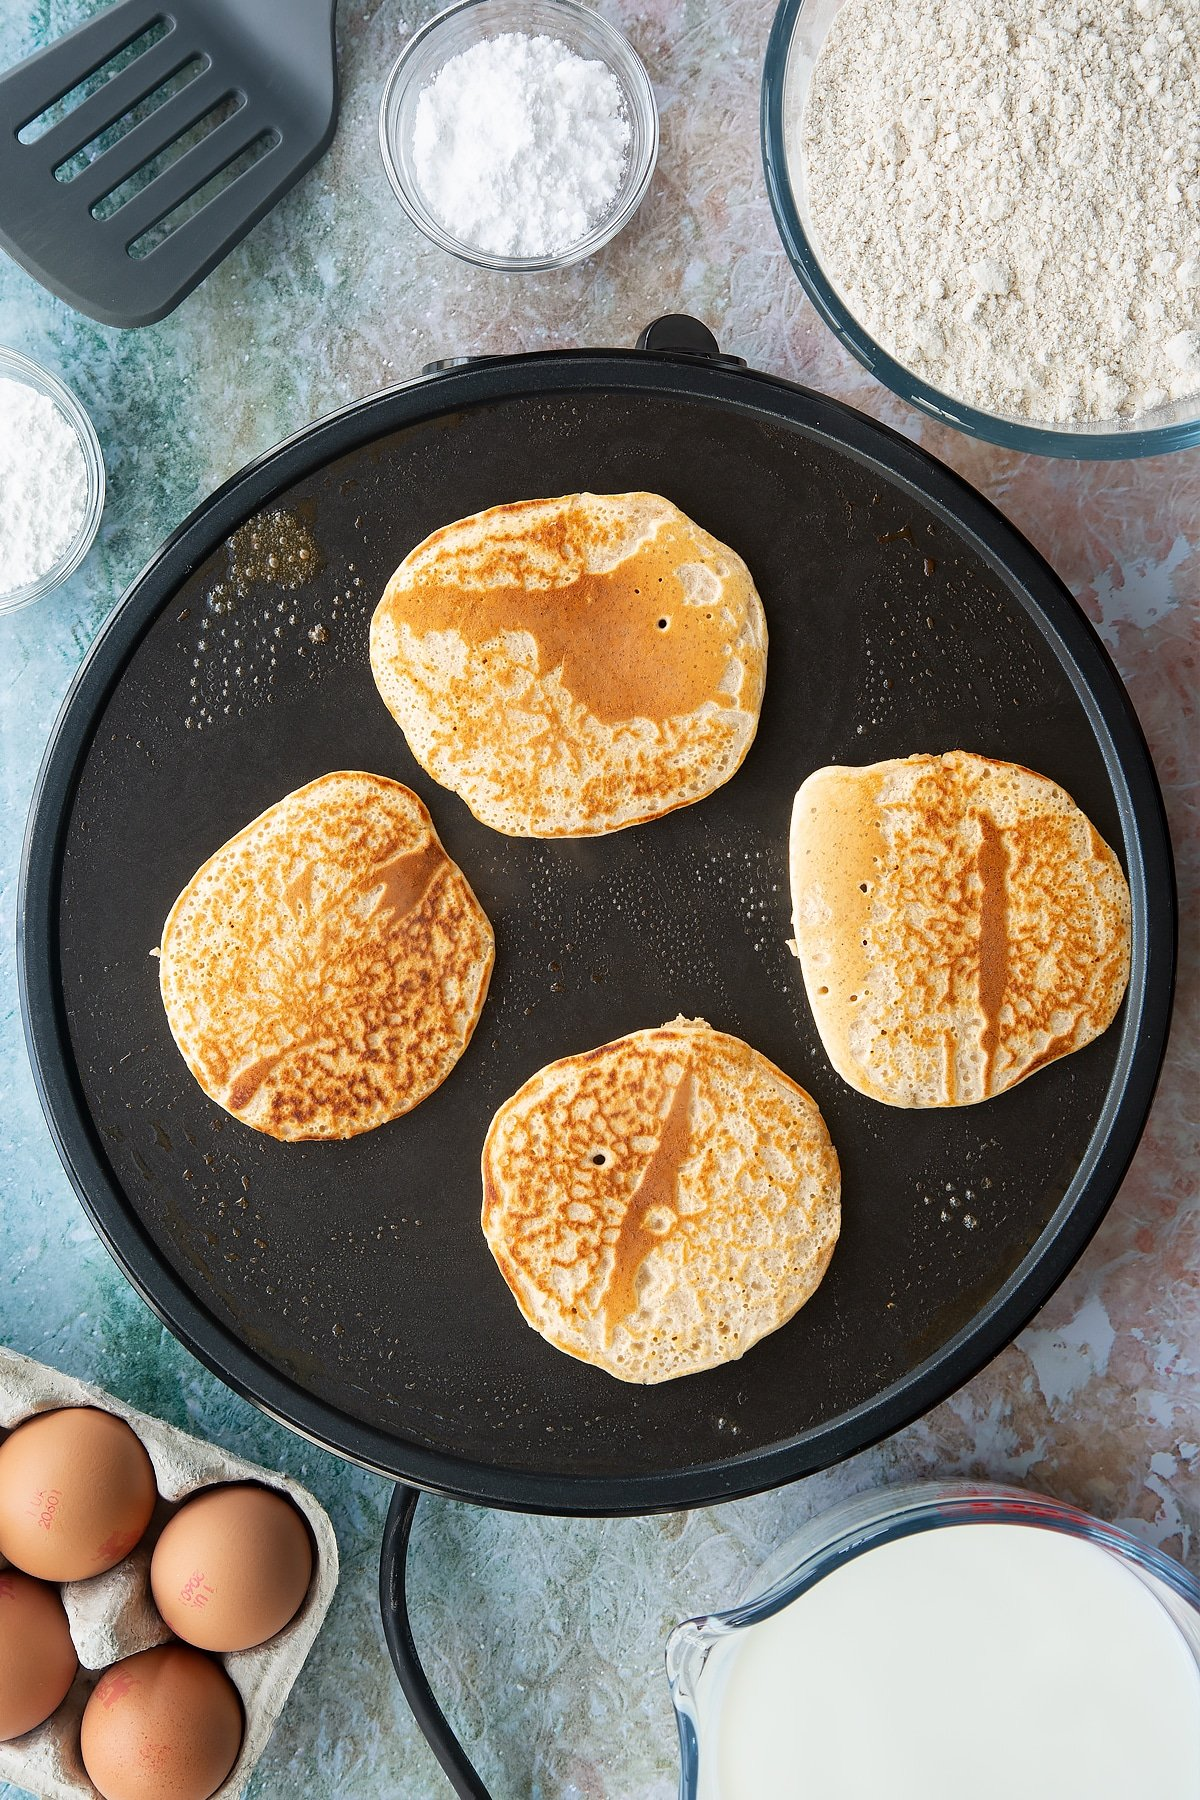 Overhead shot of a hot plate cooking four pancakes cooking